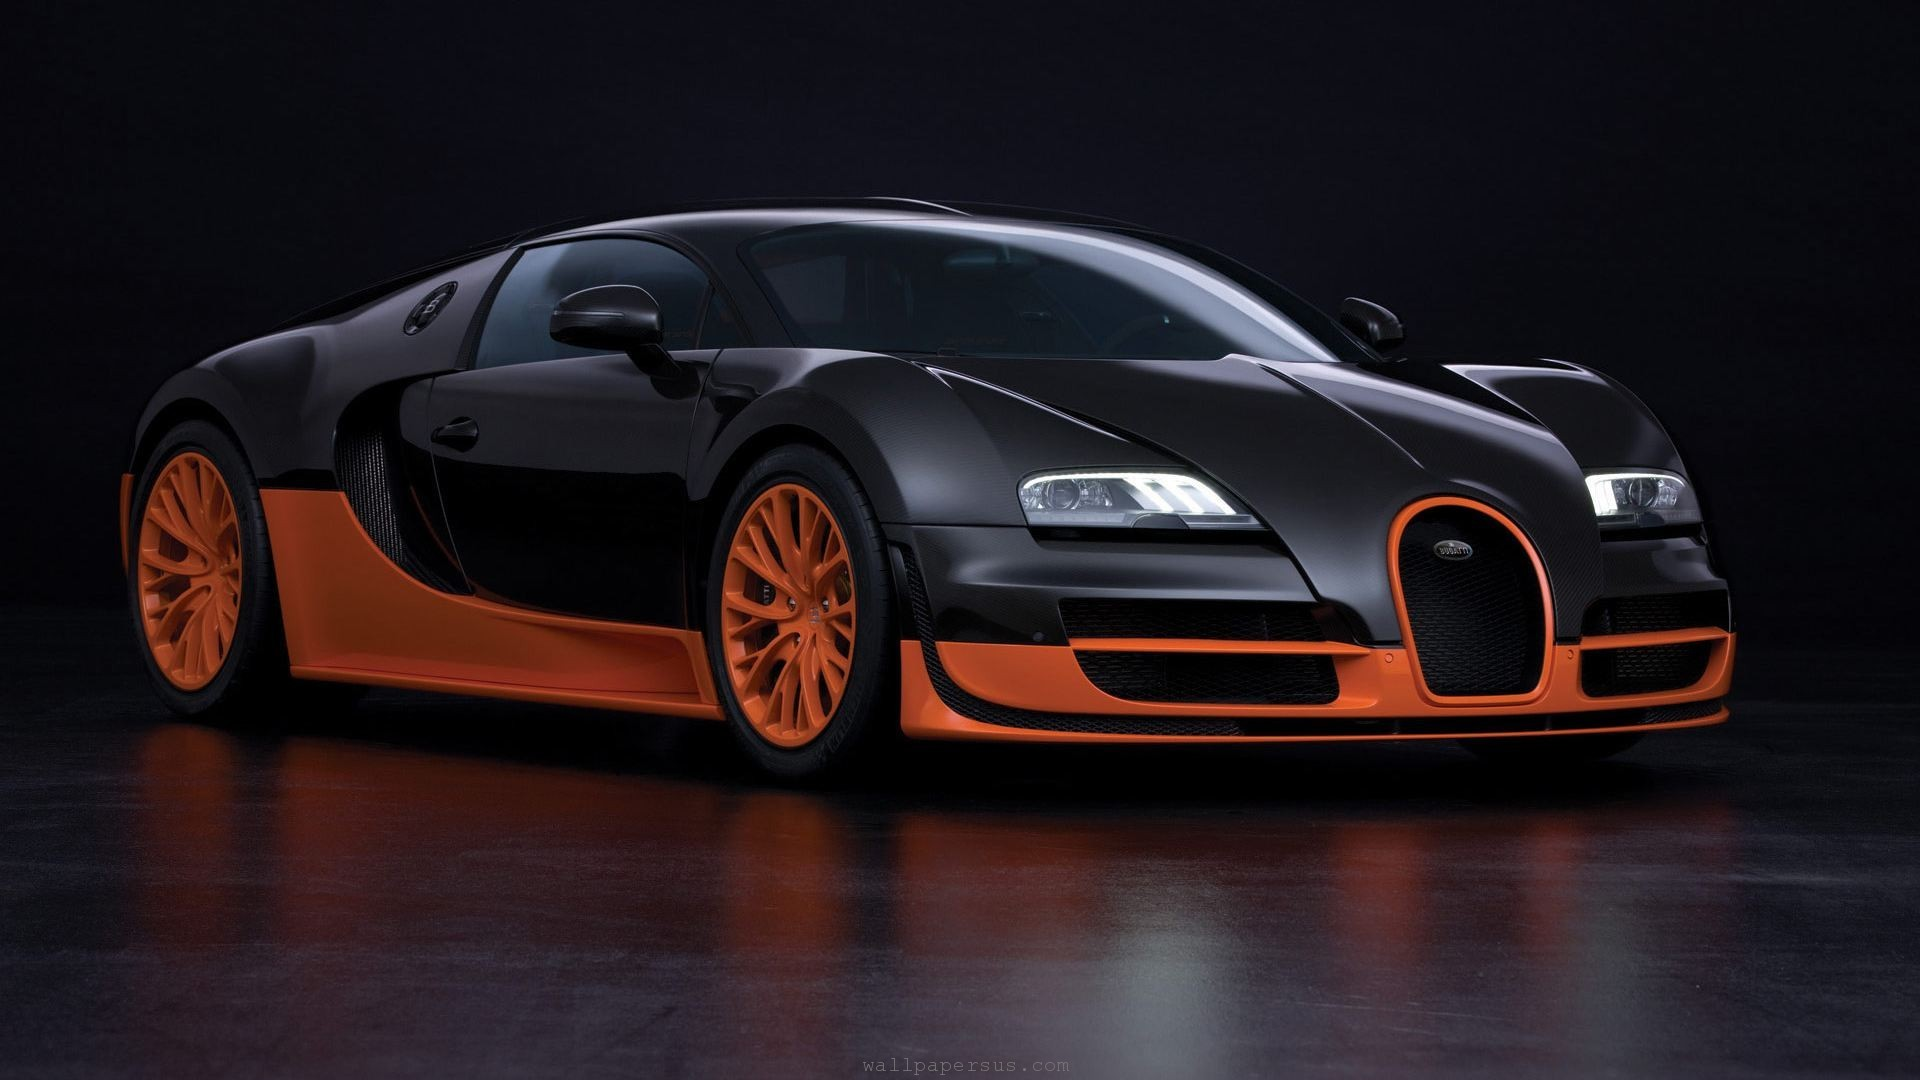 Wallpaper Bugatti Cars Veyron Supercars Wallpaper